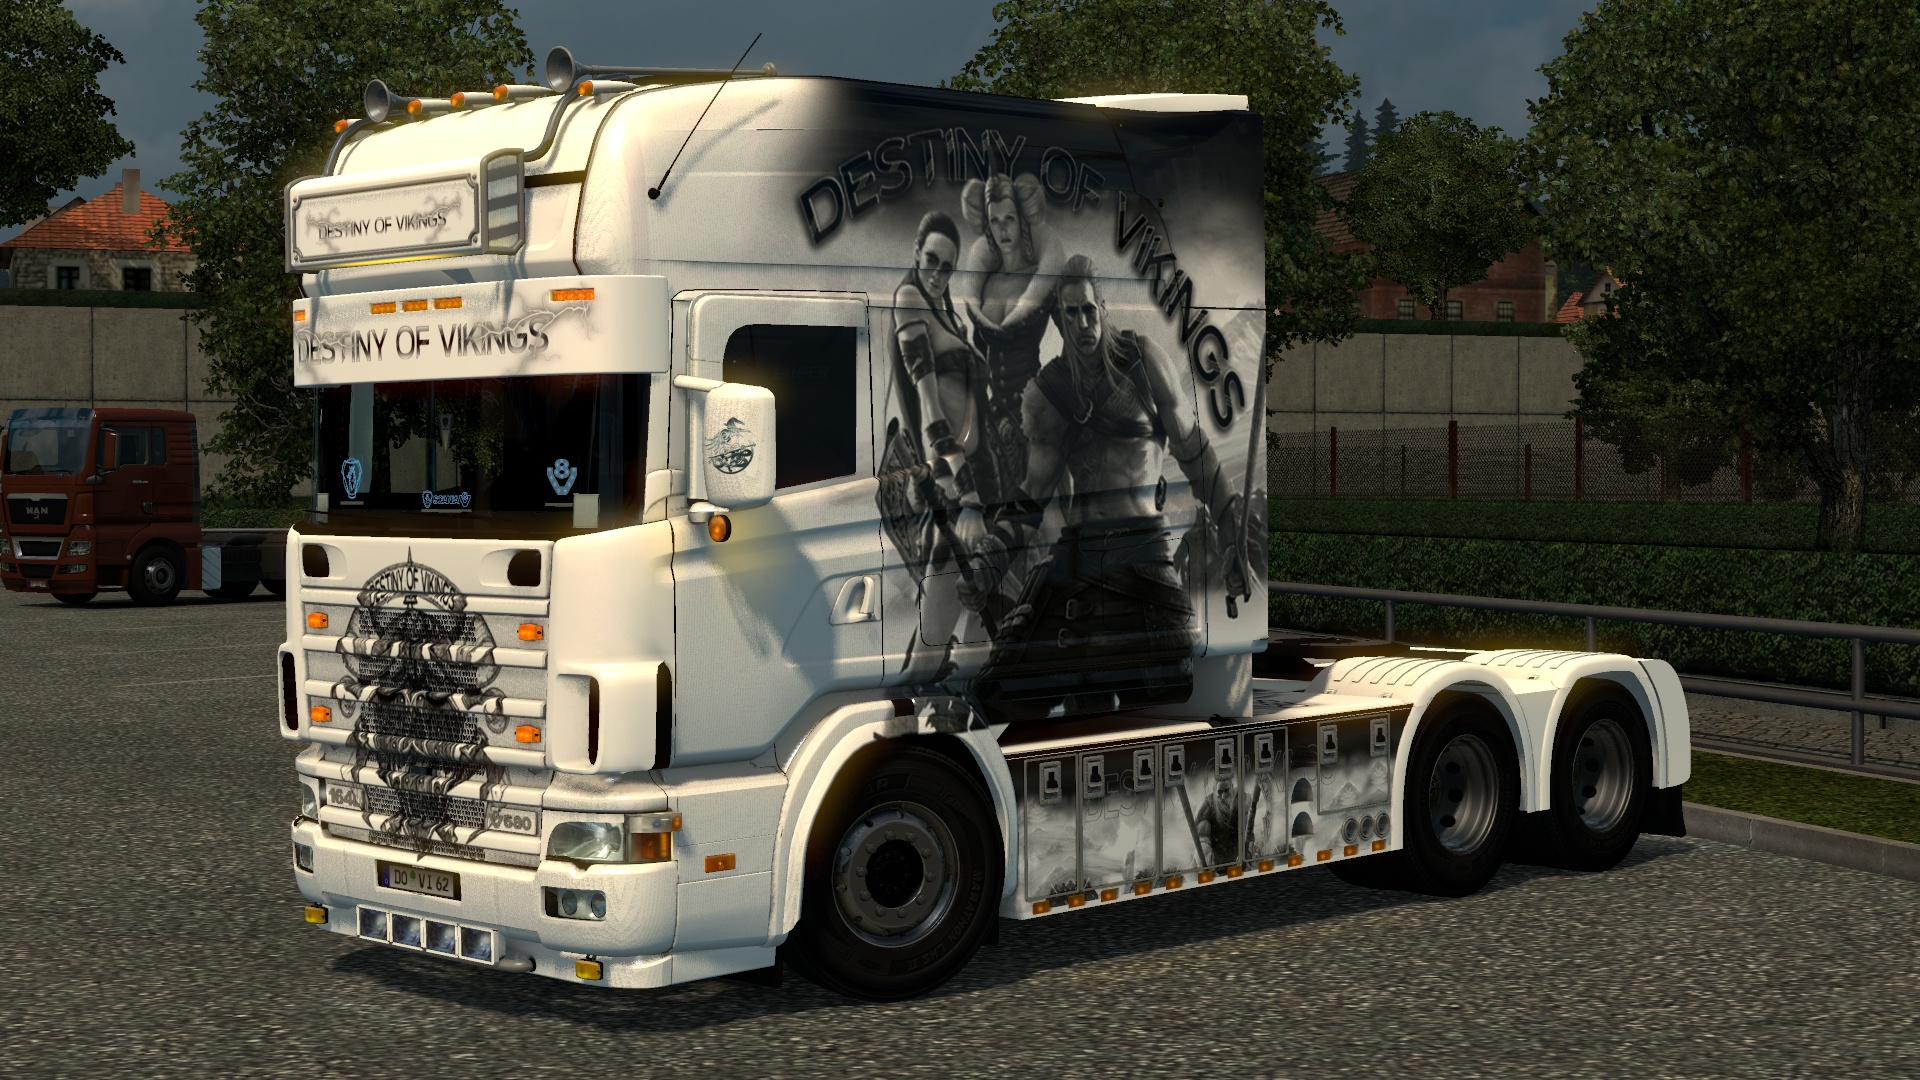 ETS2 Scania 164L 580 V8 Longline Destiny Of Vikings Edition Model